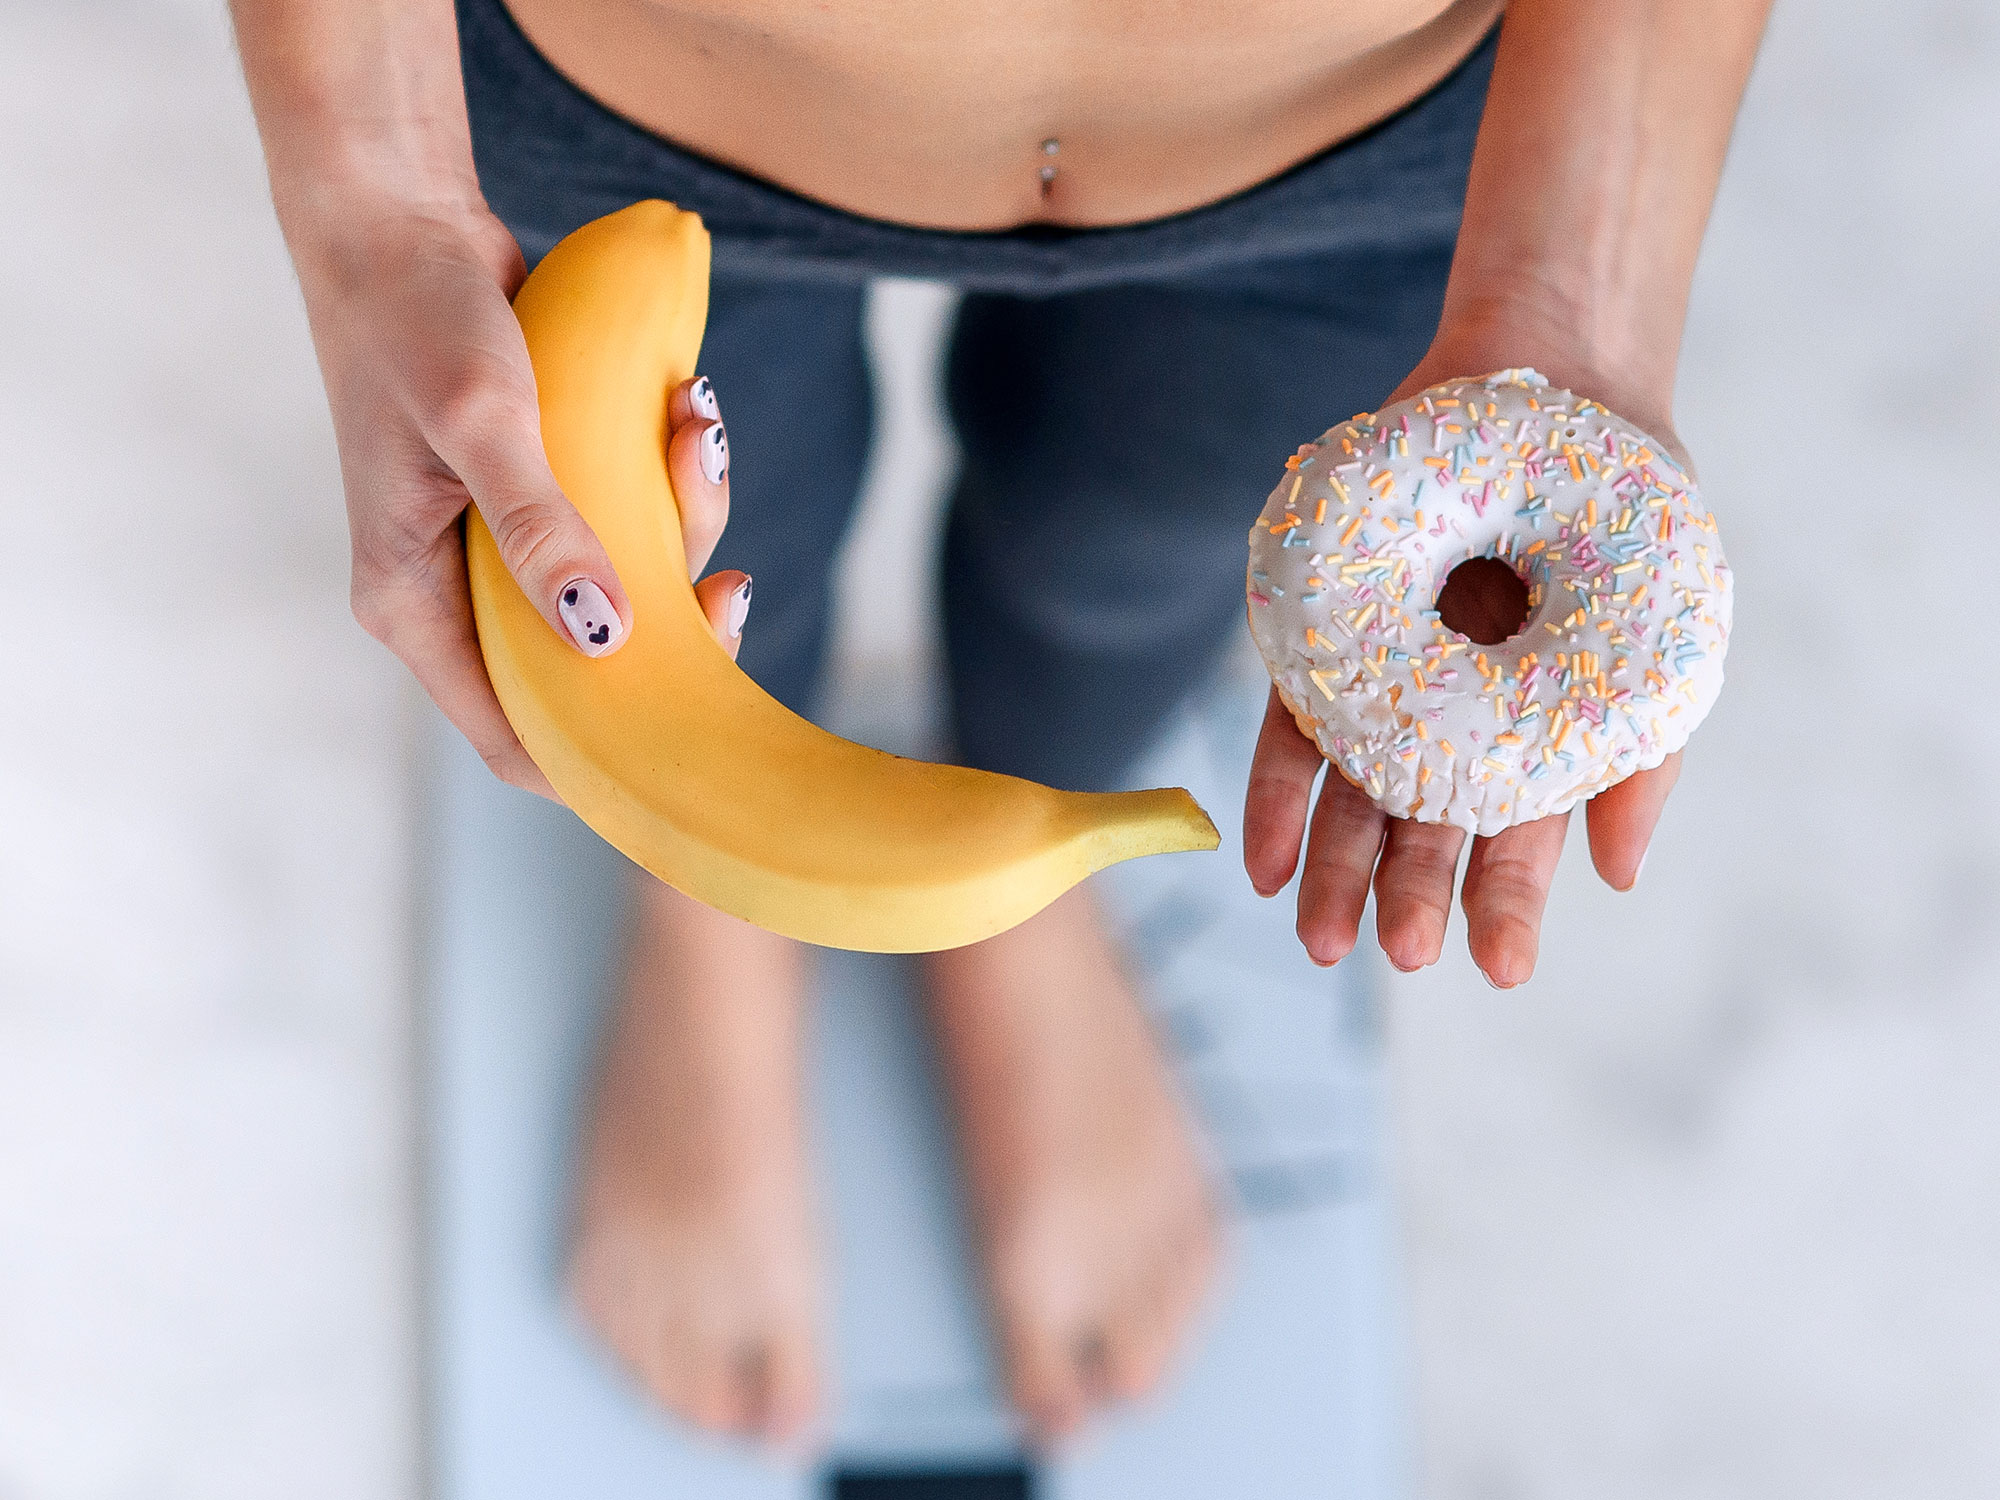 No A Banana Does Not Have More Sugar Than Donut